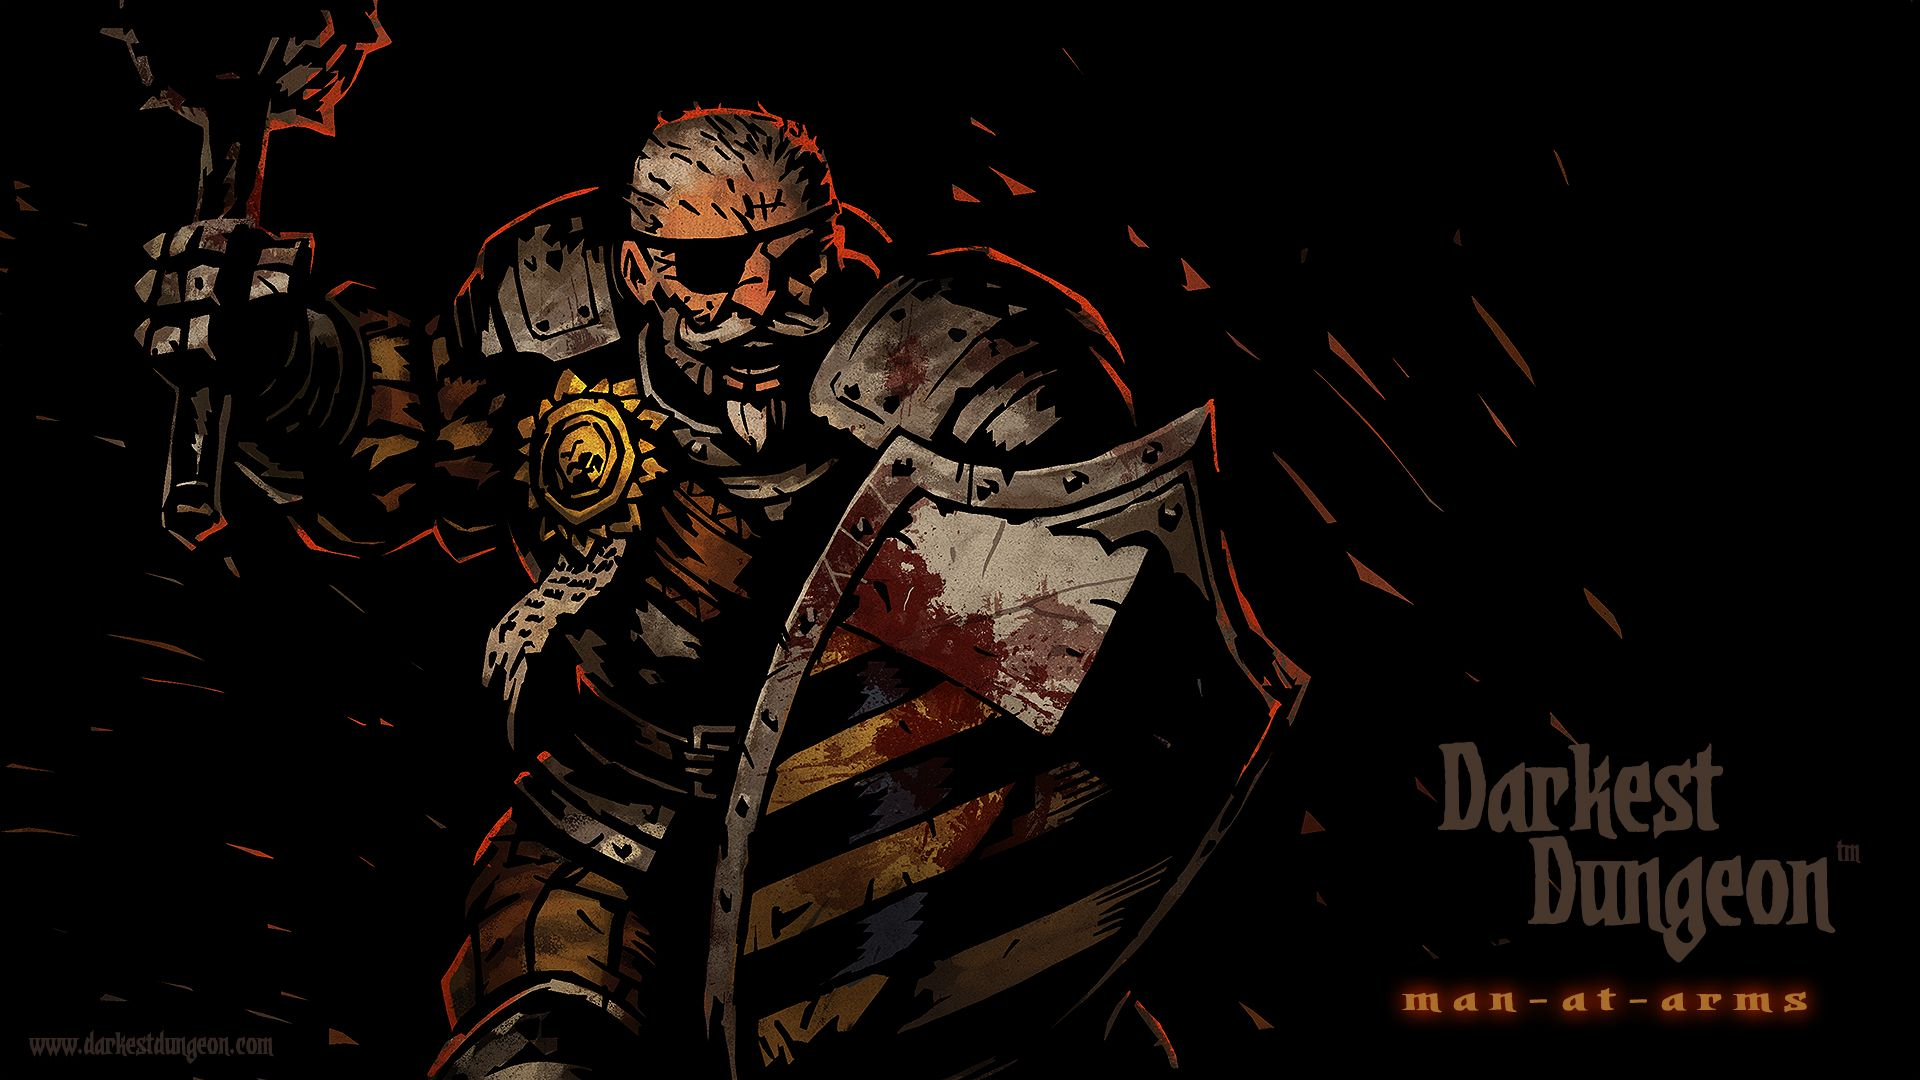 darkest dungeon - Google-søk